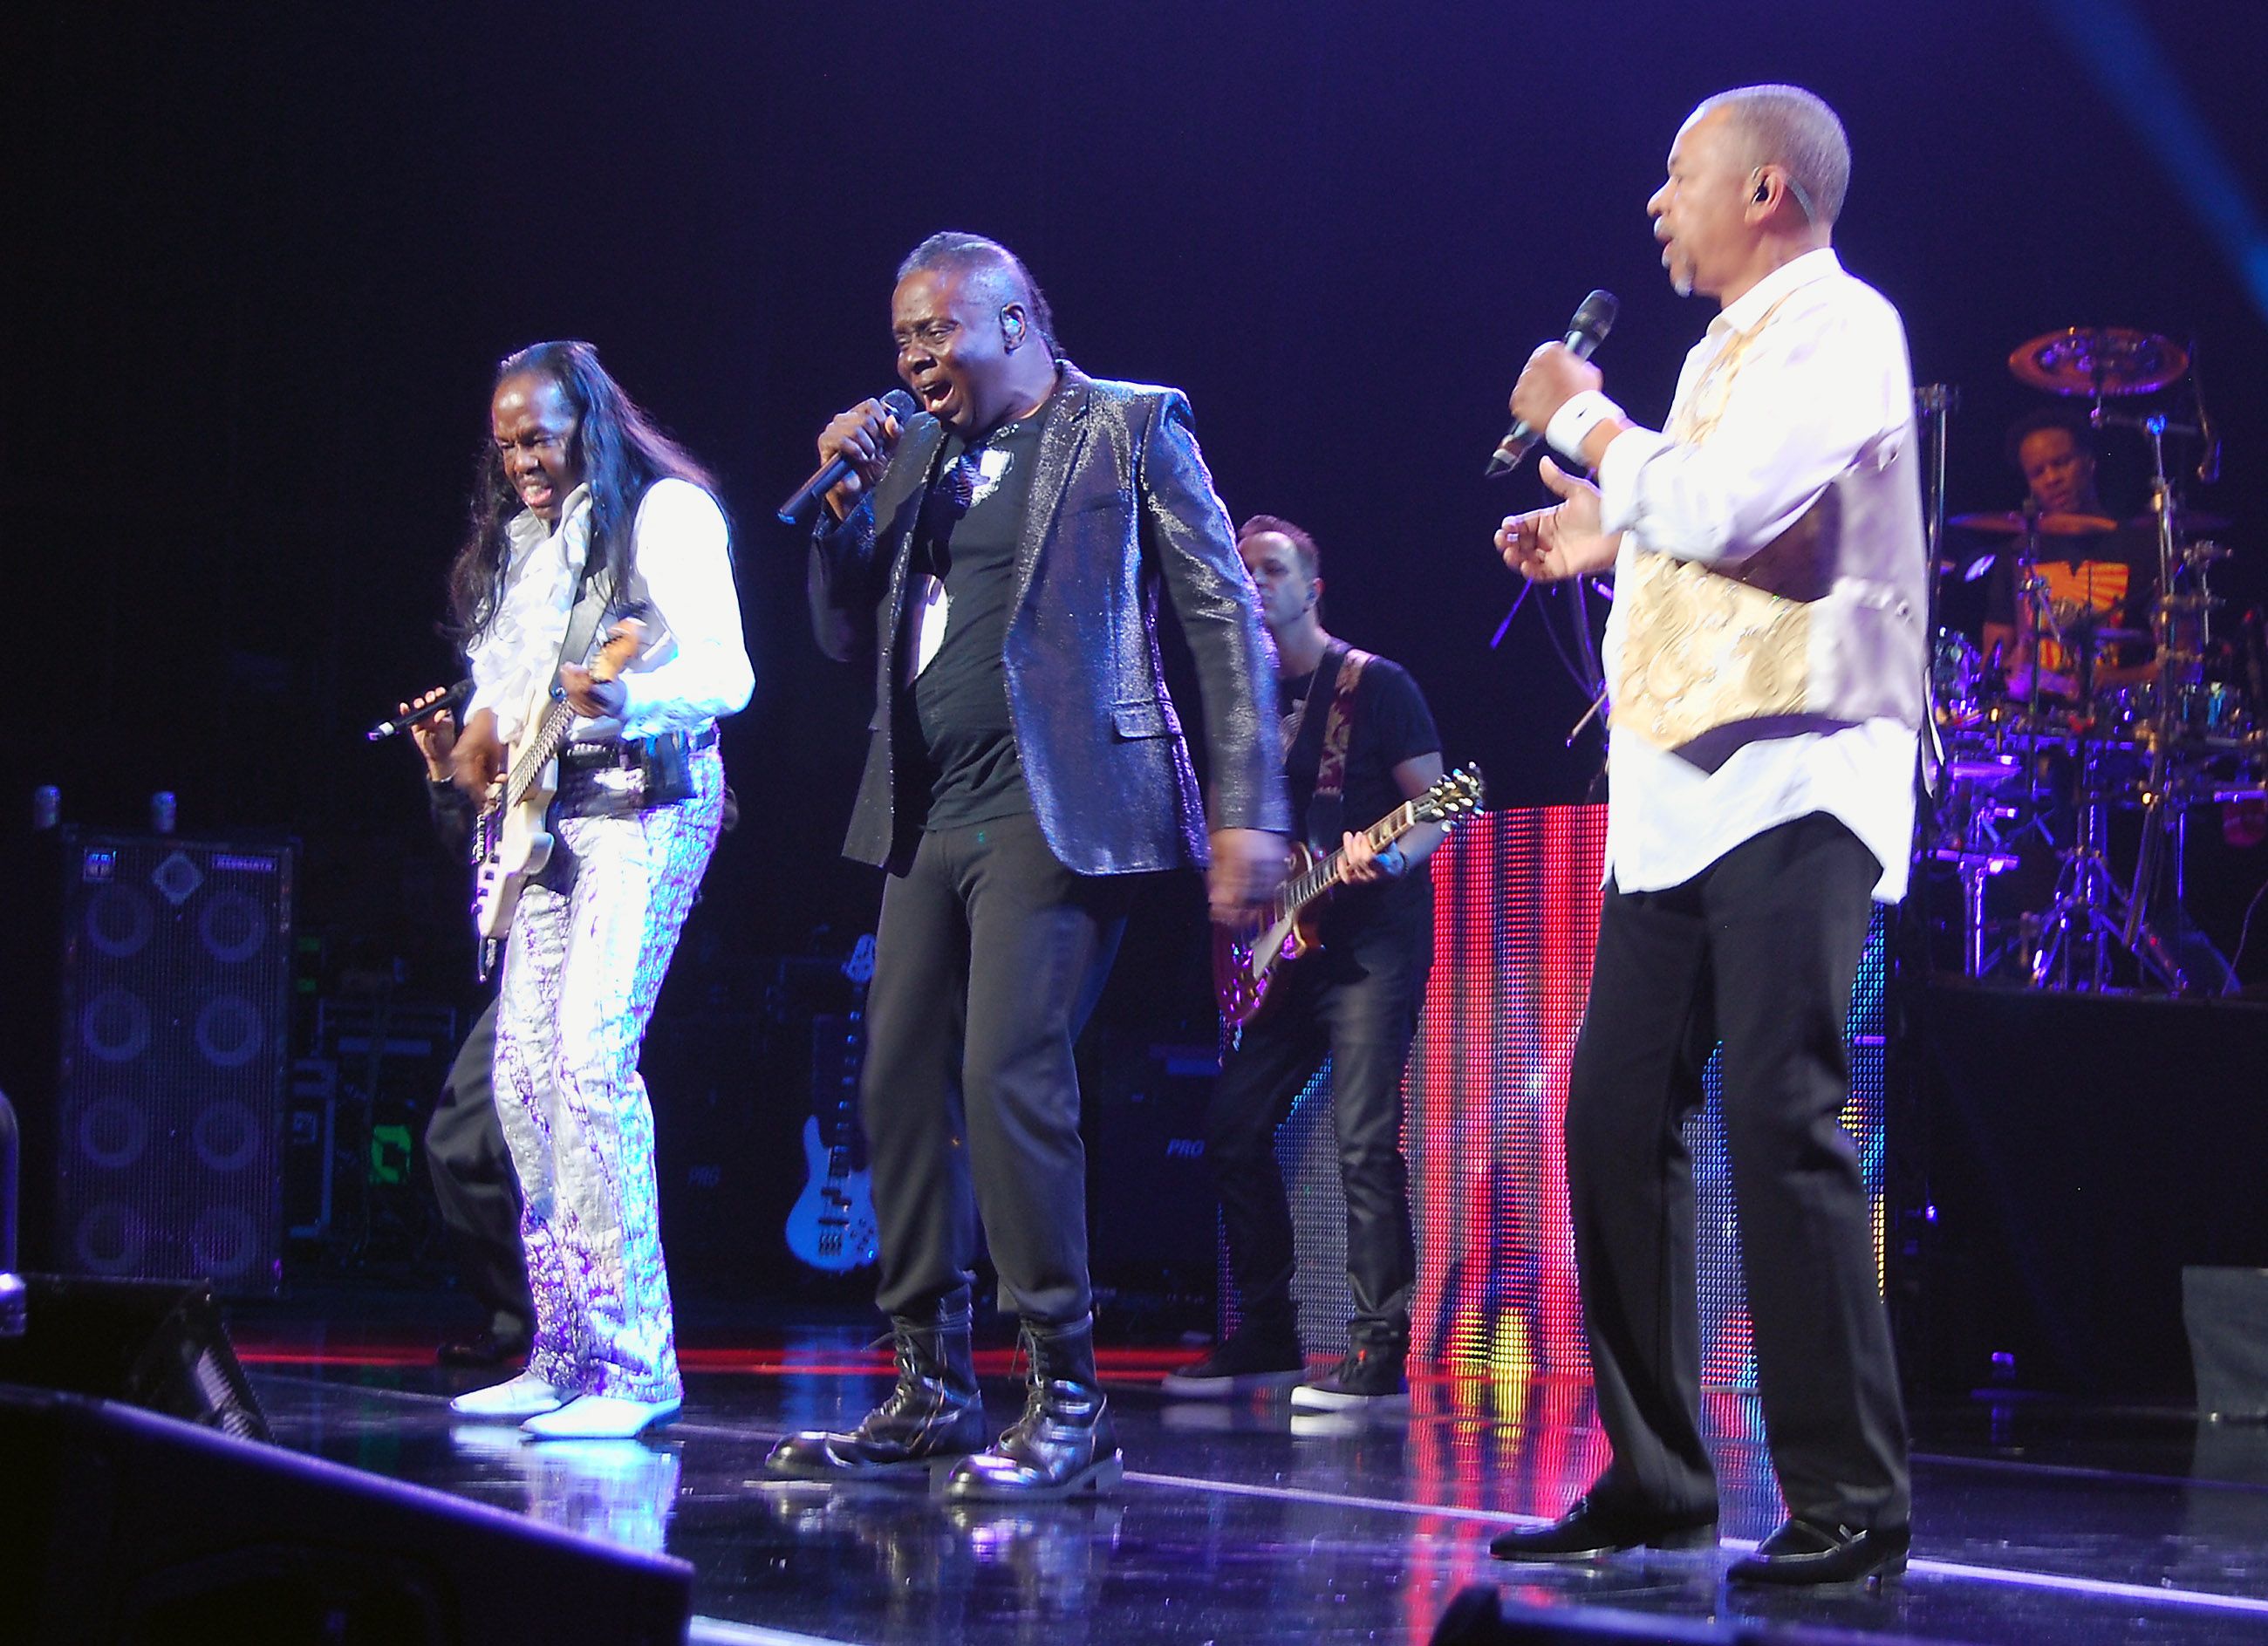 Earth, Wind & Fire to play Buffalo show